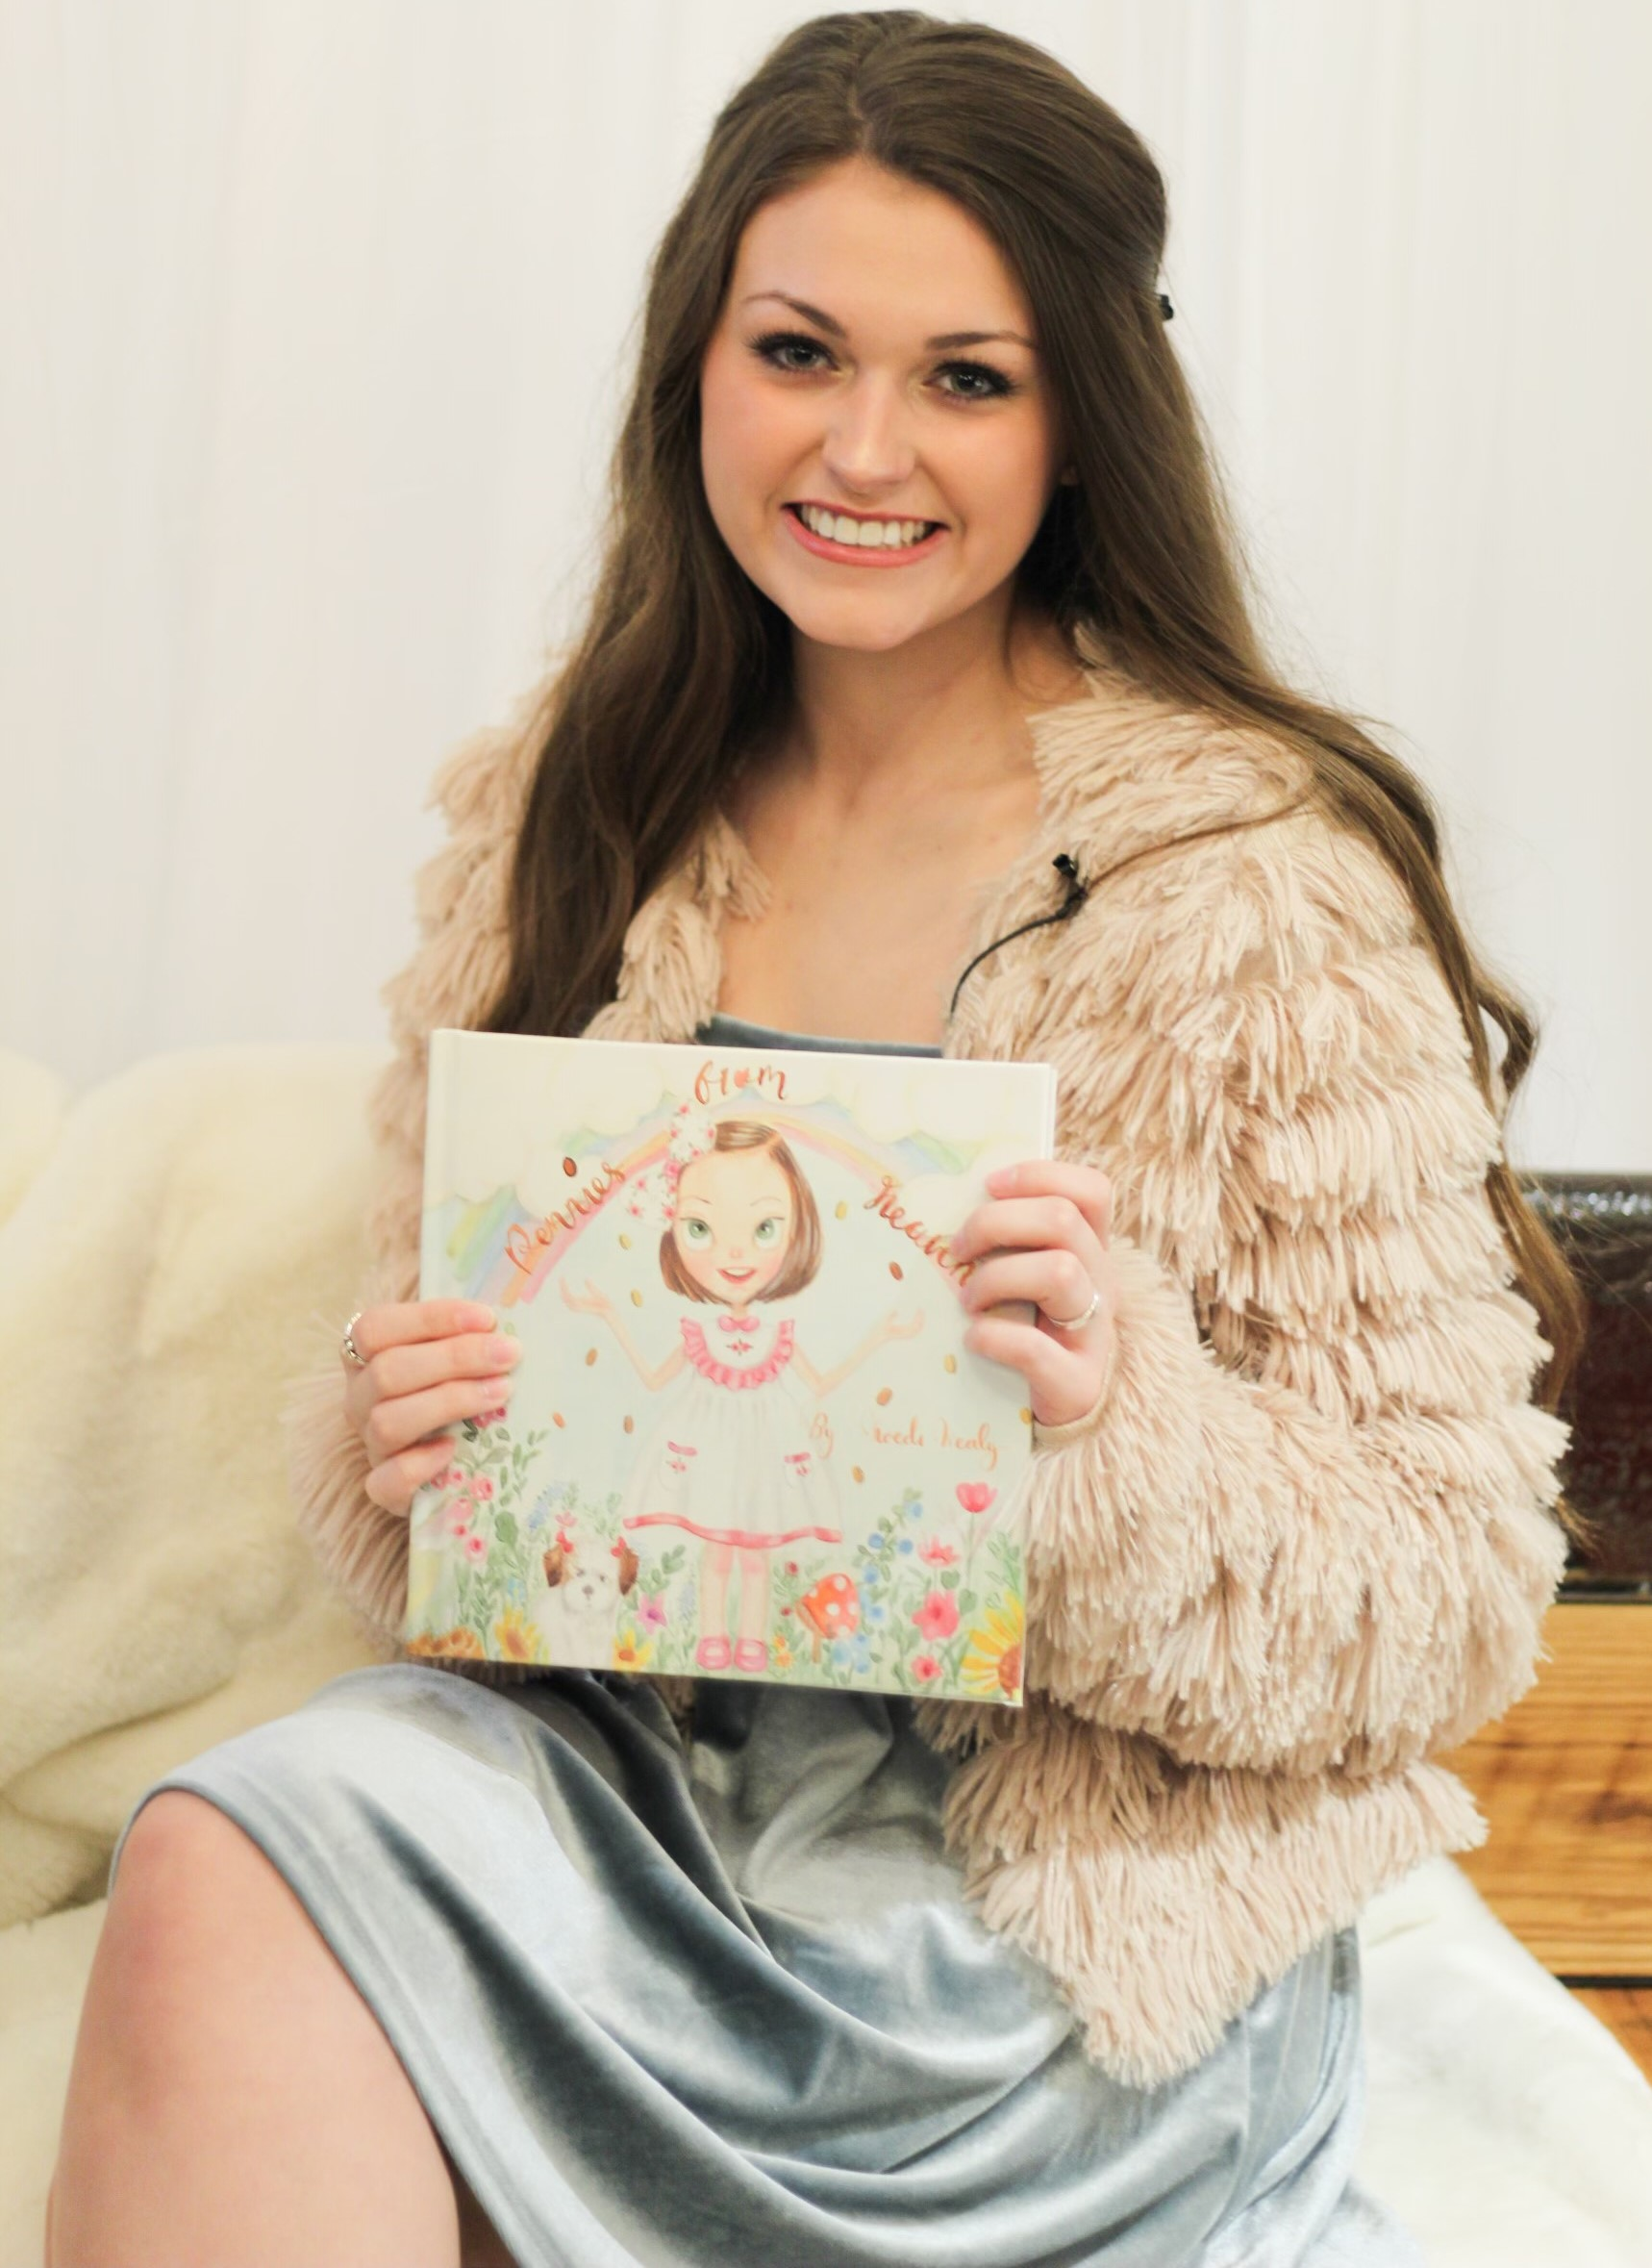 CCS Senior Releases Children's Book